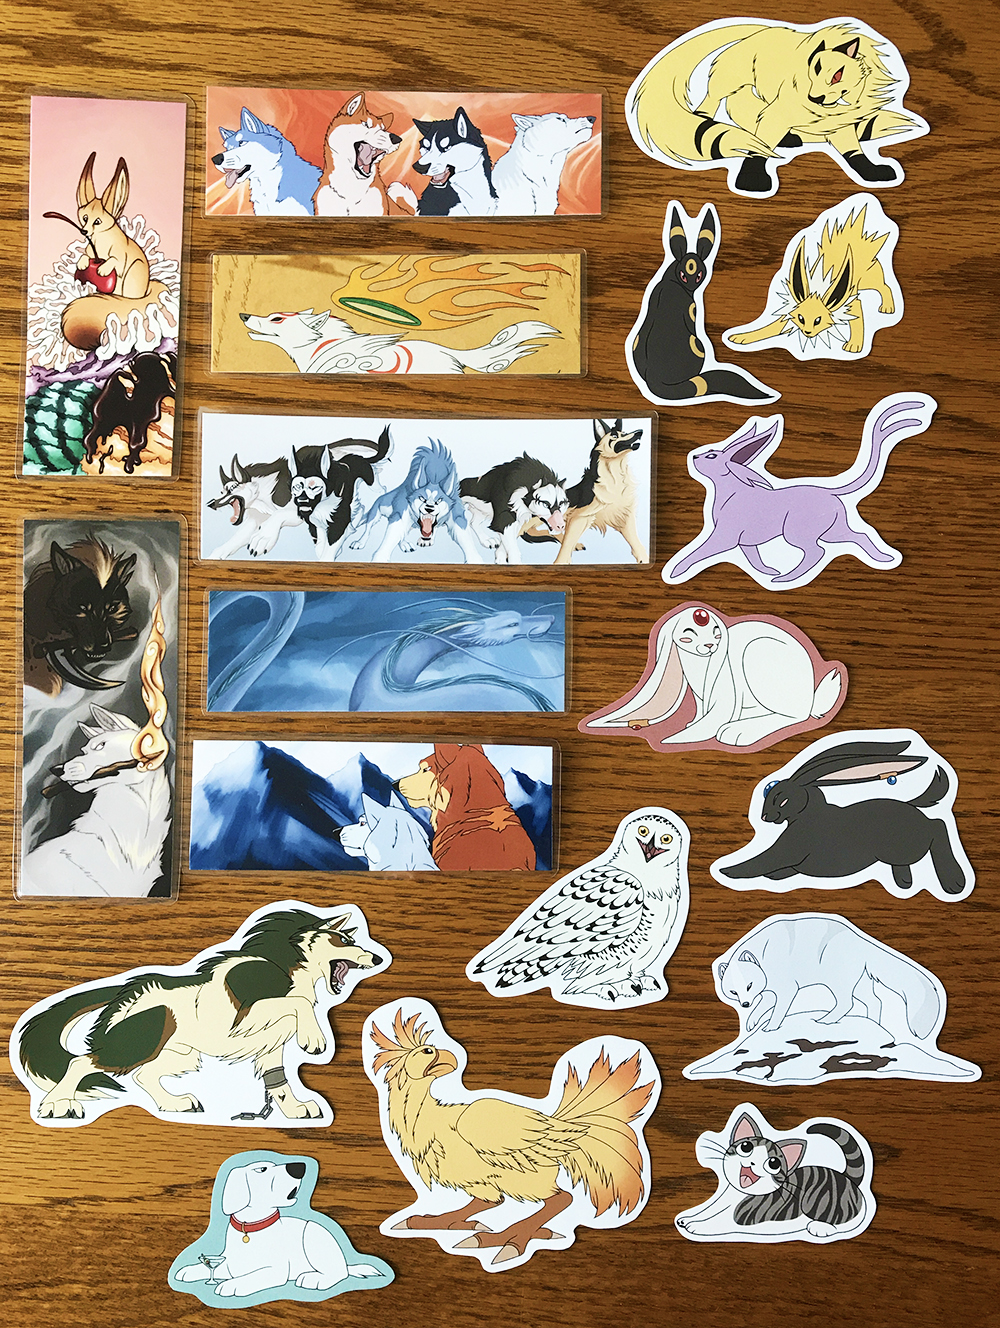 Most recent image: Bookmarks and Stickers for Sale!